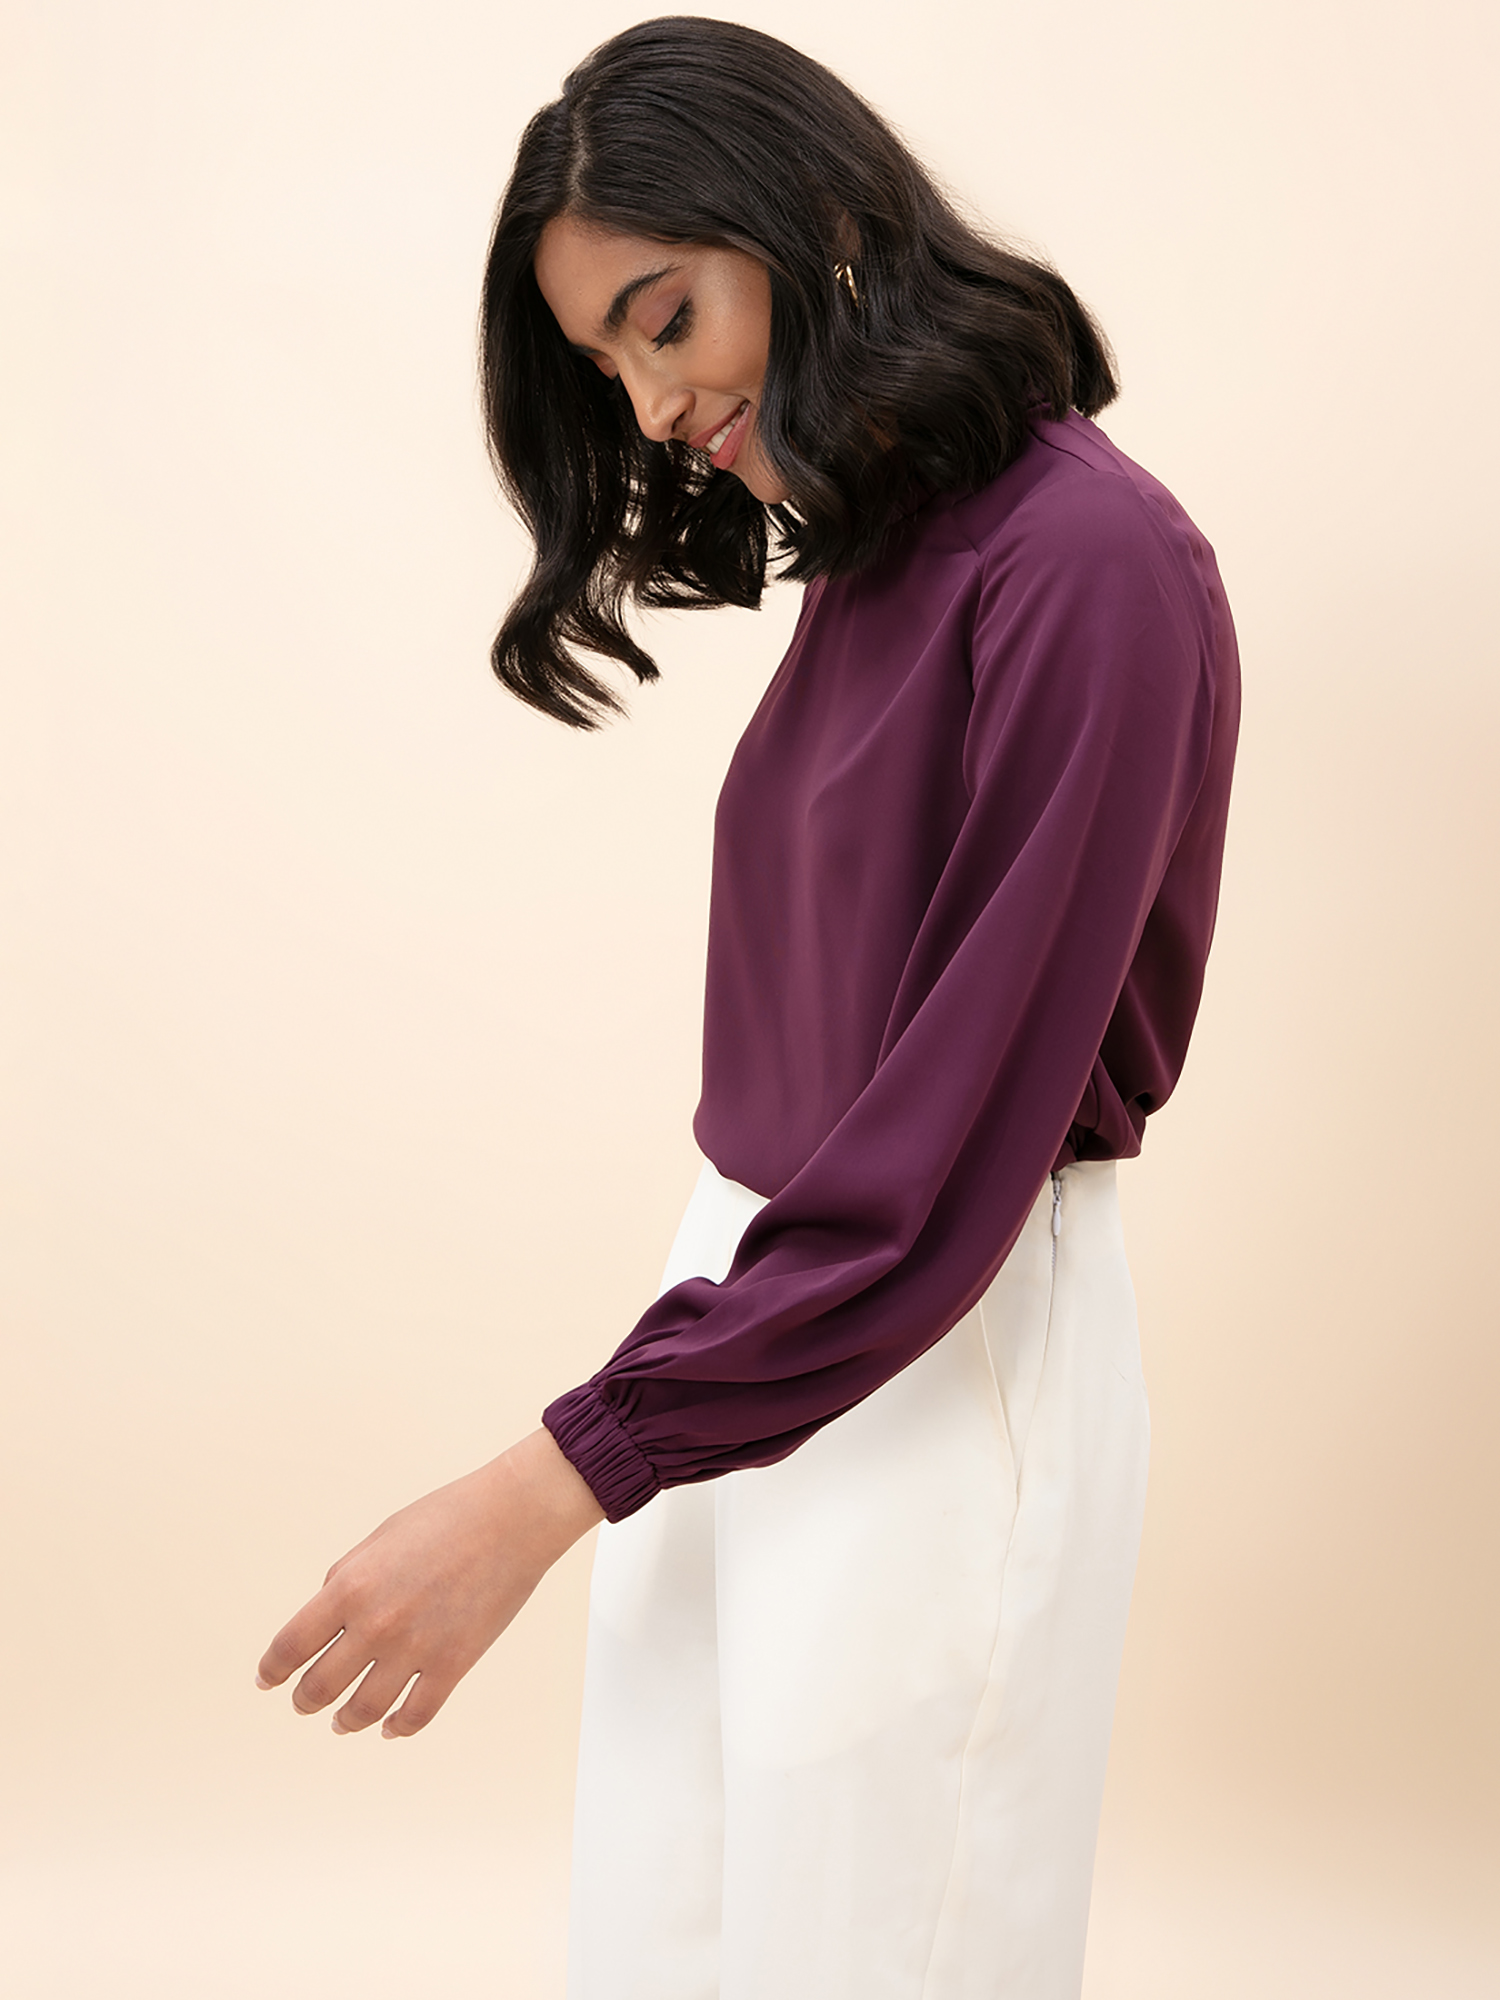 Tops-The Formidable Formal Purple Top4